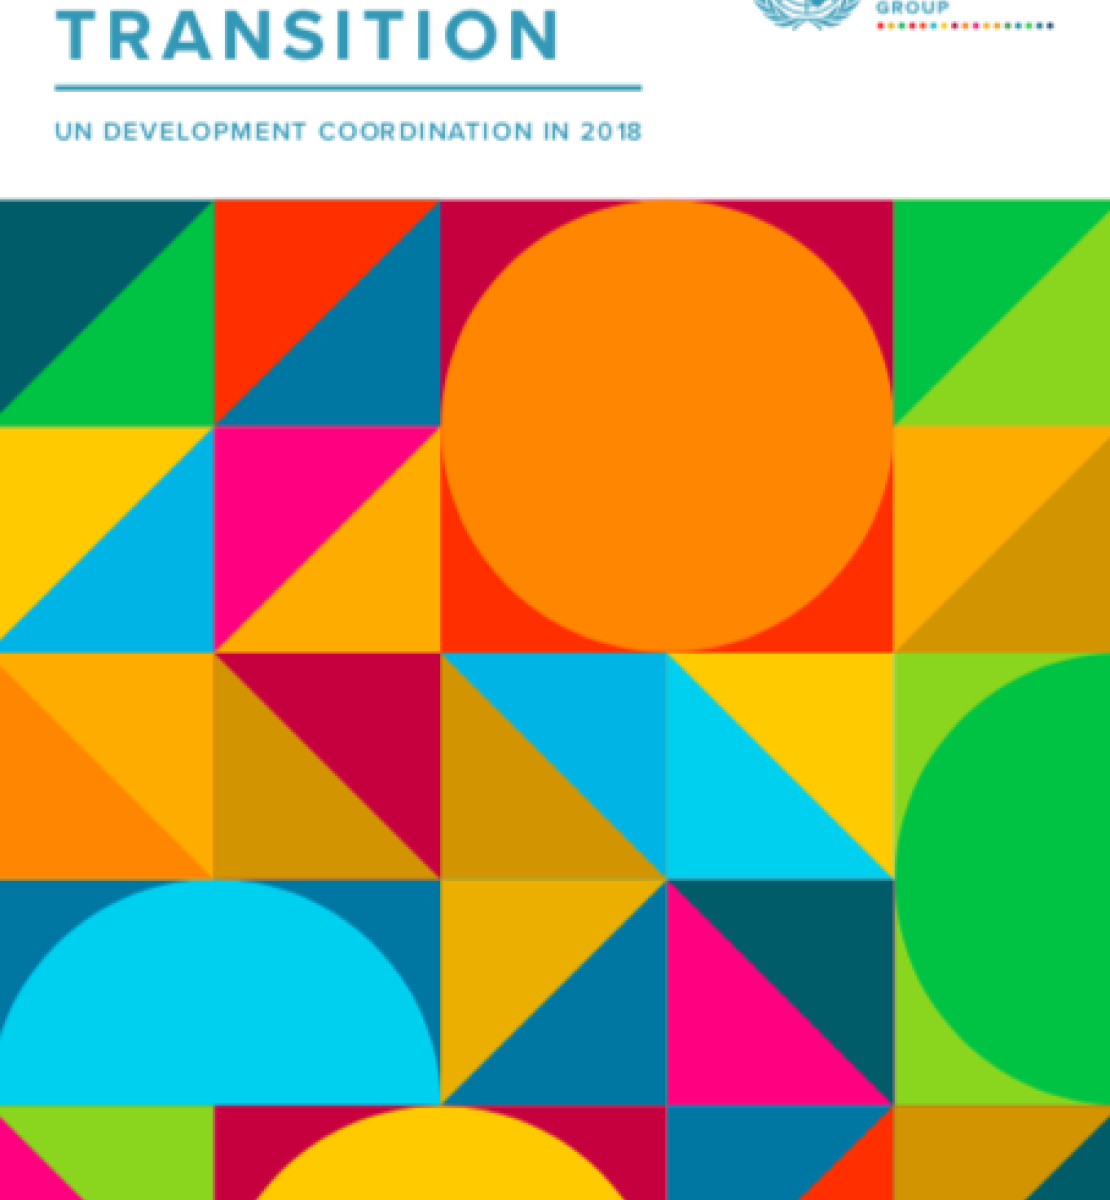 Results in Transition cover image showing vibrantly coloured geometric shapes.s